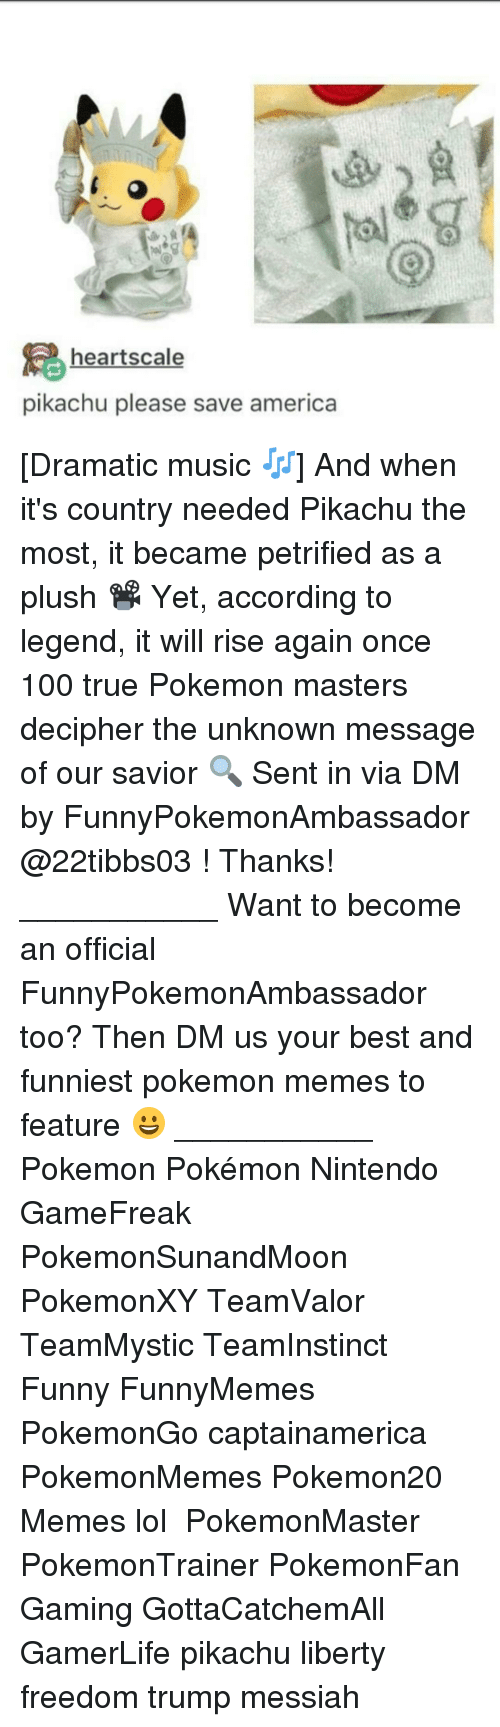 Pokemon Master: hearts cale  pikachu please save america [Dramatic music 🎶] And when it's country needed Pikachu the most, it became petrified as a plush 📽 Yet, according to legend, it will rise again once 100 true Pokemon masters decipher the unknown message of our savior 🔍 Sent in via DM by FunnyPokemonAmbassador @22tibbs03 ! Thanks! ___________ Want to become an official FunnyPokemonAmbassador too? Then DM us your best and funniest pokemon memes to feature 😀 ___________ Pokemon Pokémon Nintendo GameFreak PokemonSunandMoon PokemonXY TeamValor TeamMystic TeamInstinct Funny FunnyMemes PokemonGo captainamerica PokemonMemes Pokemon20 Memes lol ポケットモンスター PokemonMaster PokemonTrainer PokemonFan Gaming GottaCatchemAll GamerLife pikachu liberty freedom trump messiah